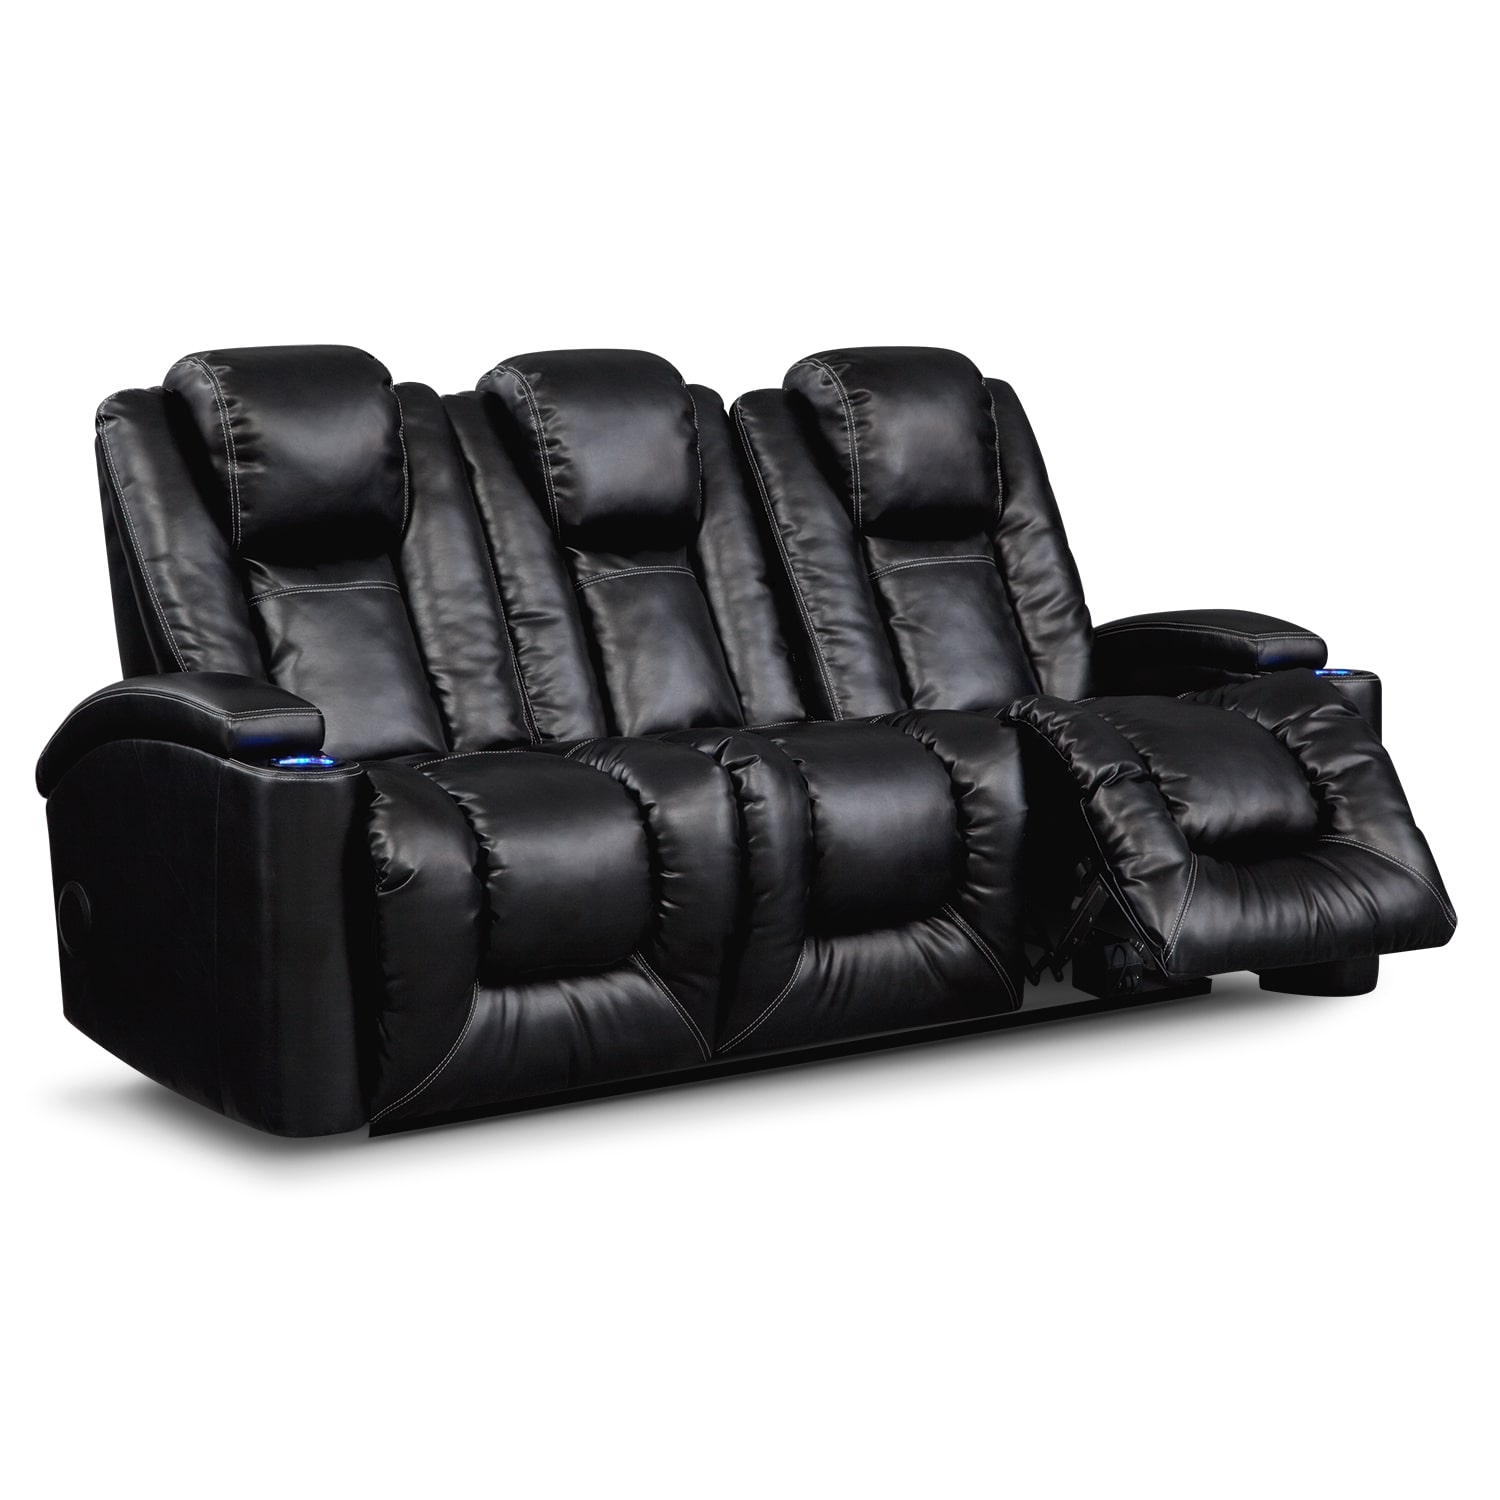 Monthly Best Seller Recliners furthermore Red Reclining Living Room Sets likewise 1439666380 furthermore 1577669 likewise Costilla Power Rocker Recliner. on best power reclining sofa